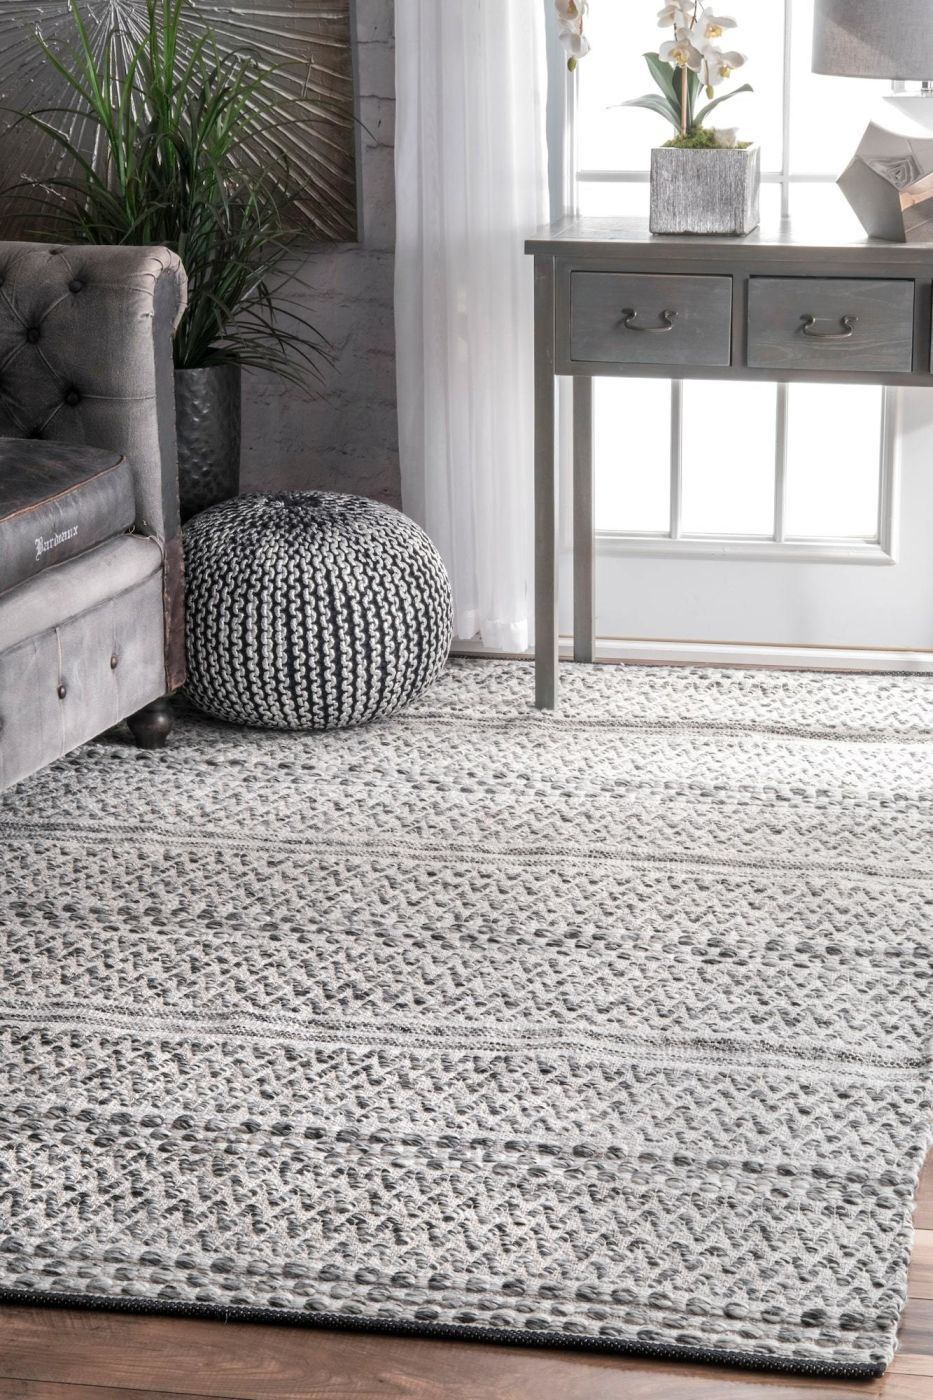 Nuloom Natosha Indoor Outdoor Chevron Striped Area Rug Veme01a 508 Only 254 80 At Contemporary Furniture Warehouse